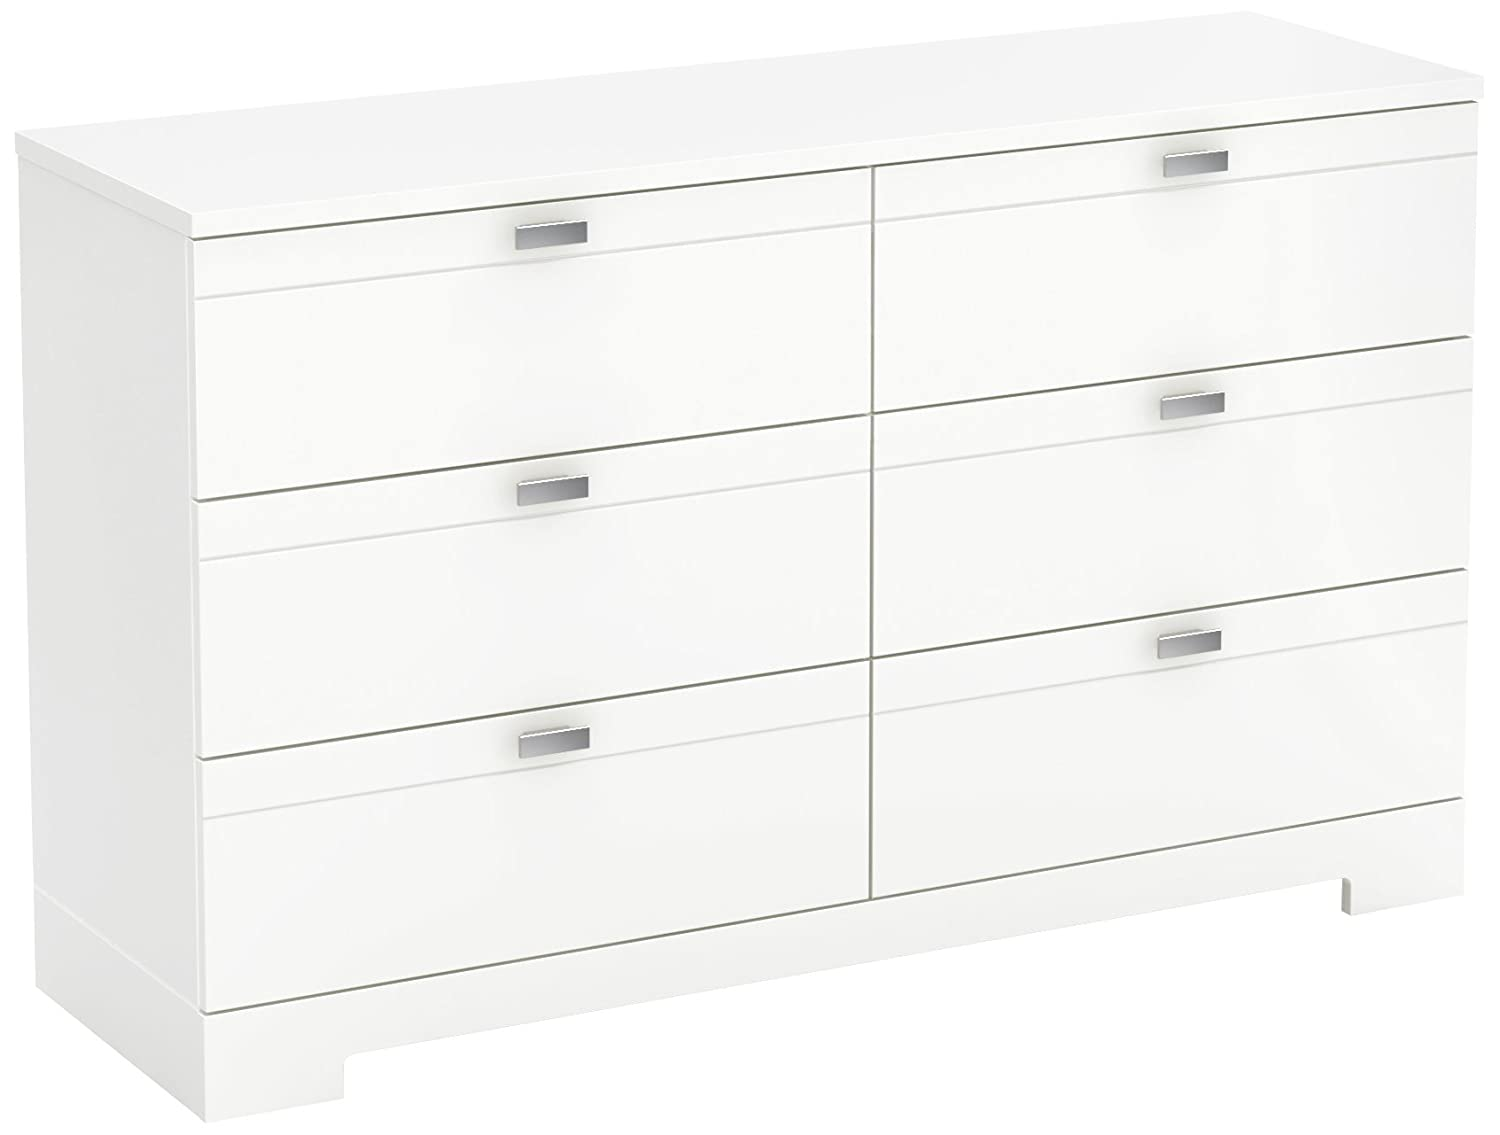 decorations dresser for shore www com one within remodel marvelous espan us plans south step meldeah